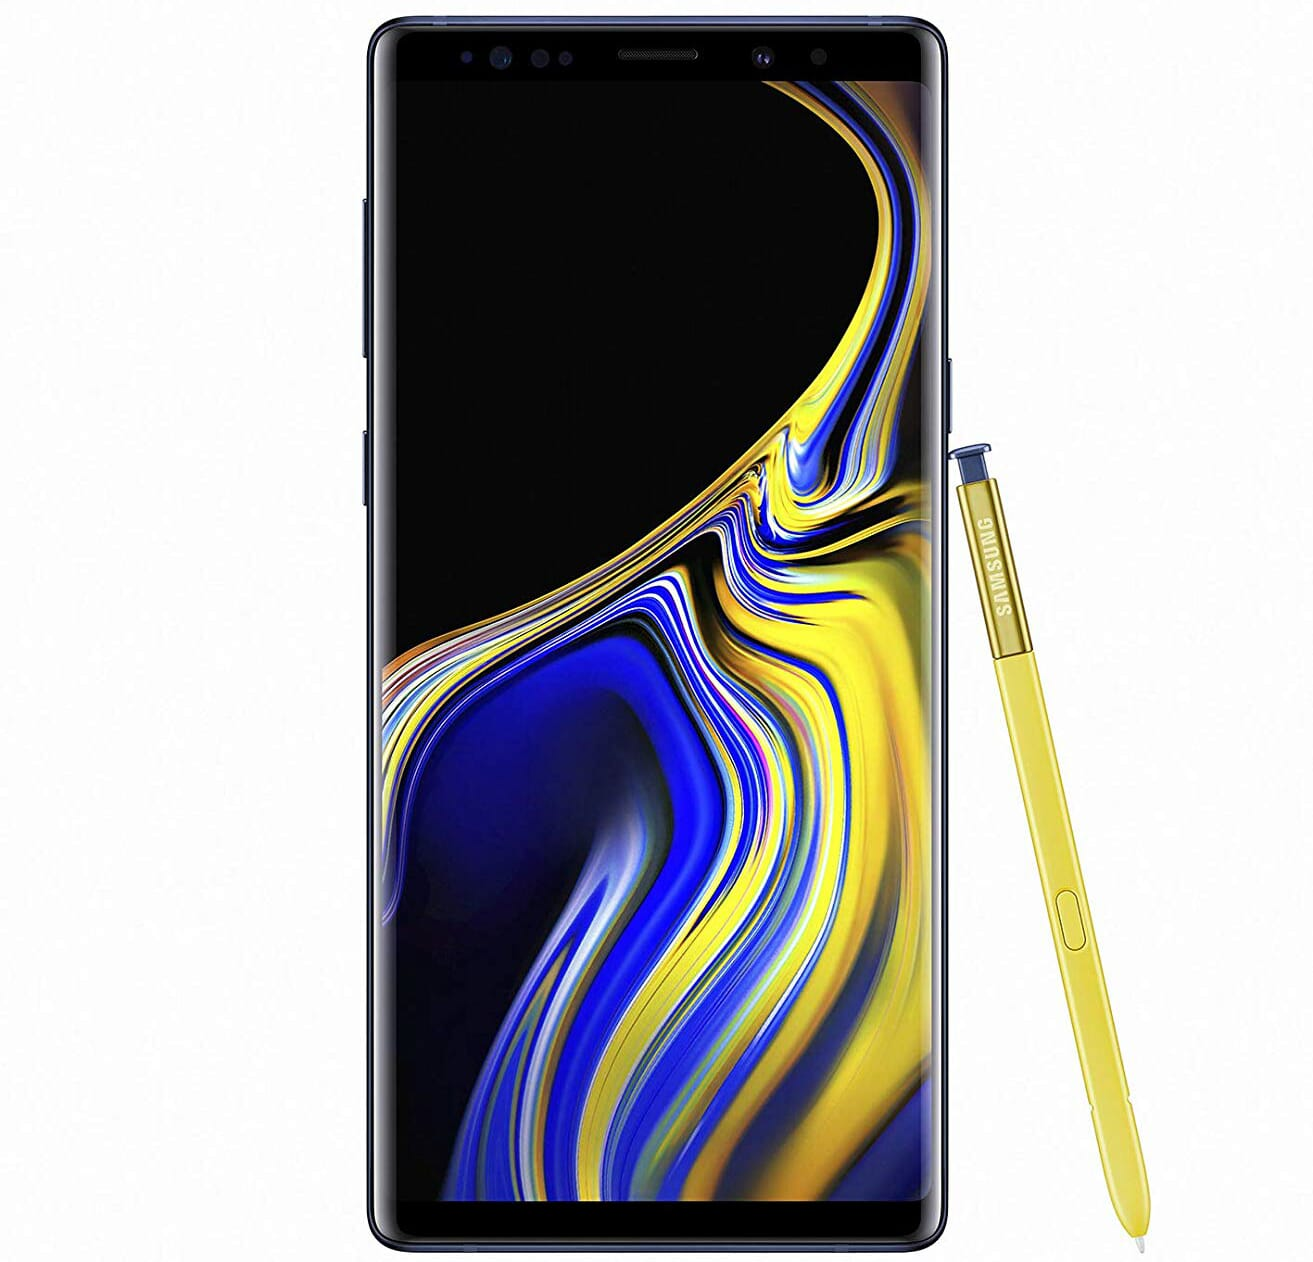 Samsung Galaxy Note 9 best smartphone camera